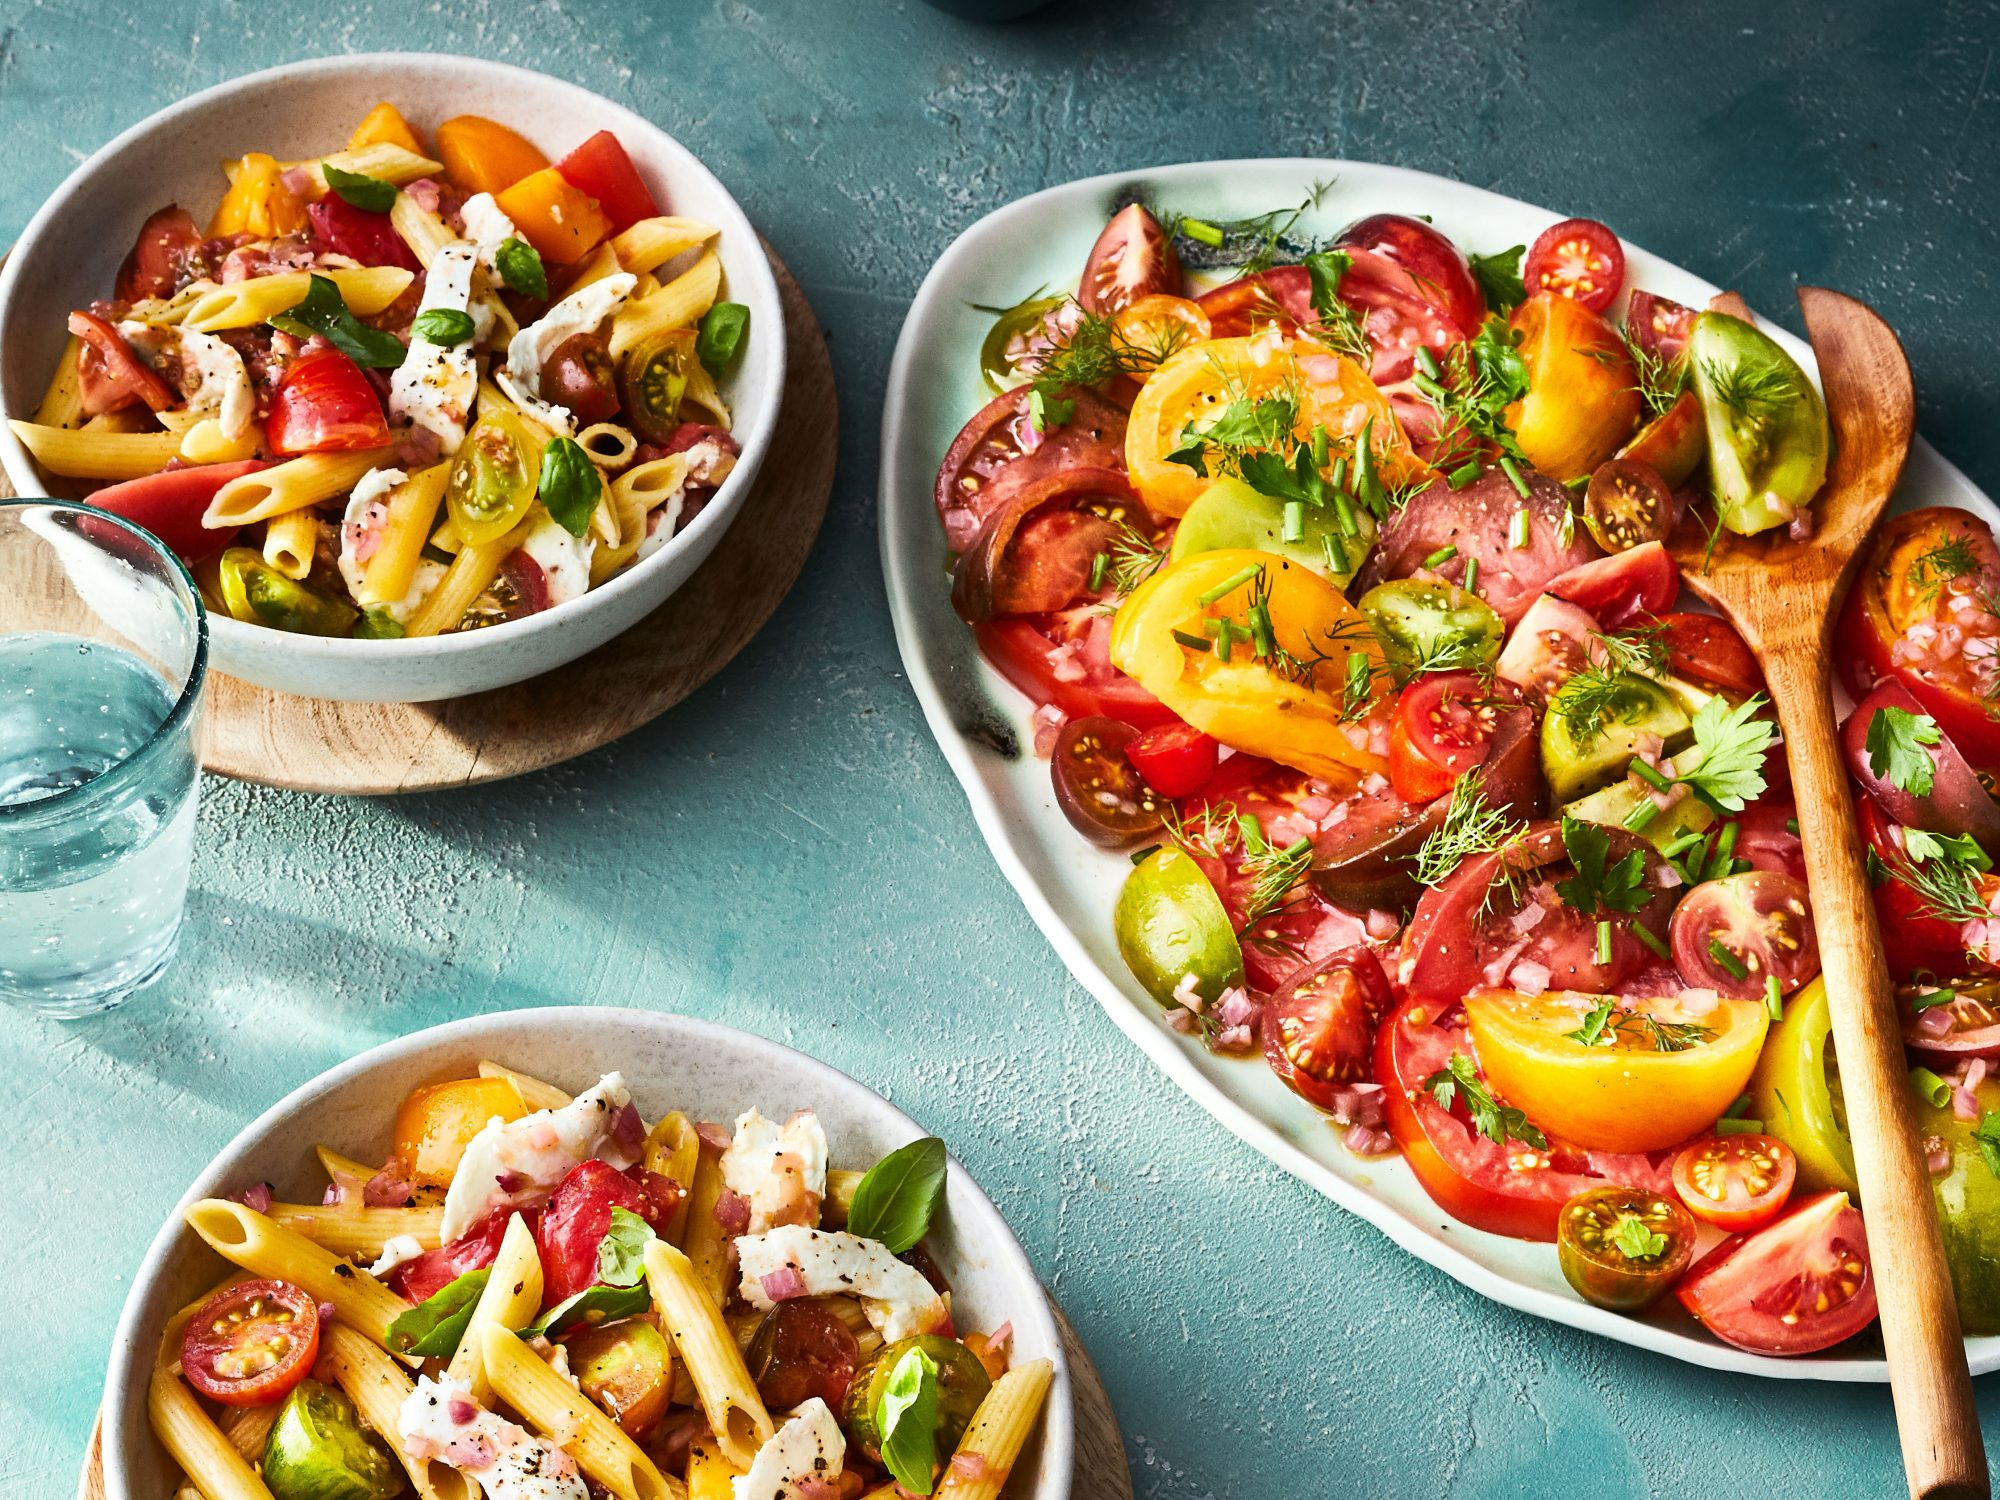 Marinated Tomato-and-Herb Salad